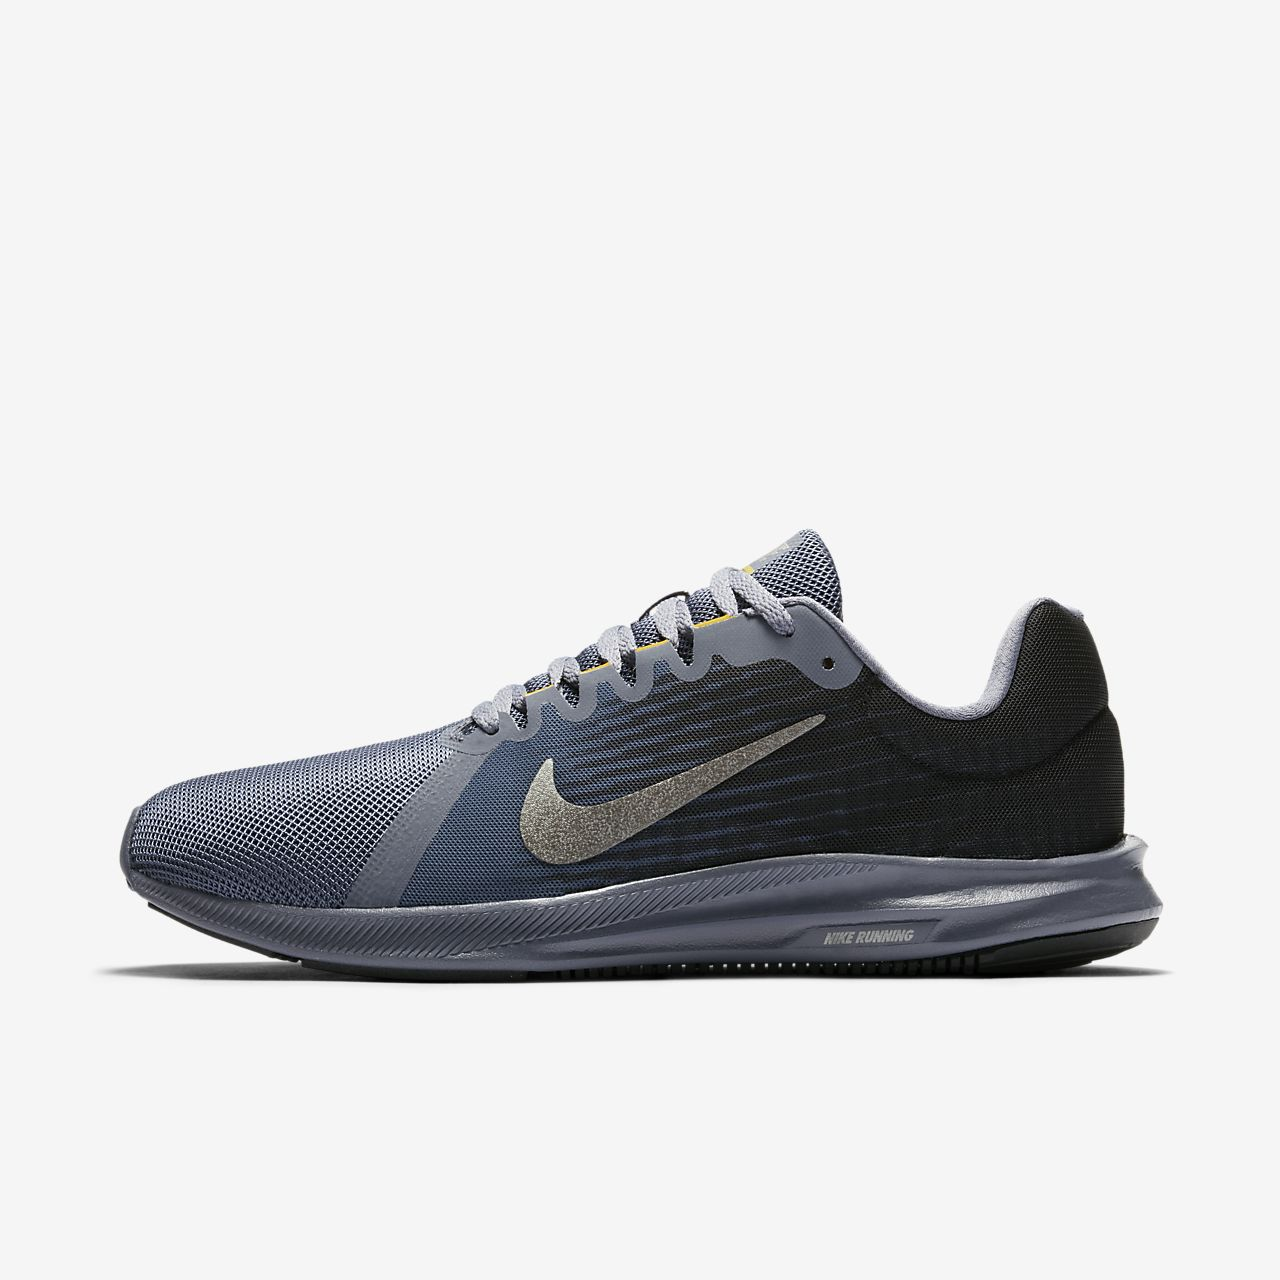 265cba722d8d6f Nike Downshifter 8 Men s Running Shoe. Nike.com GB